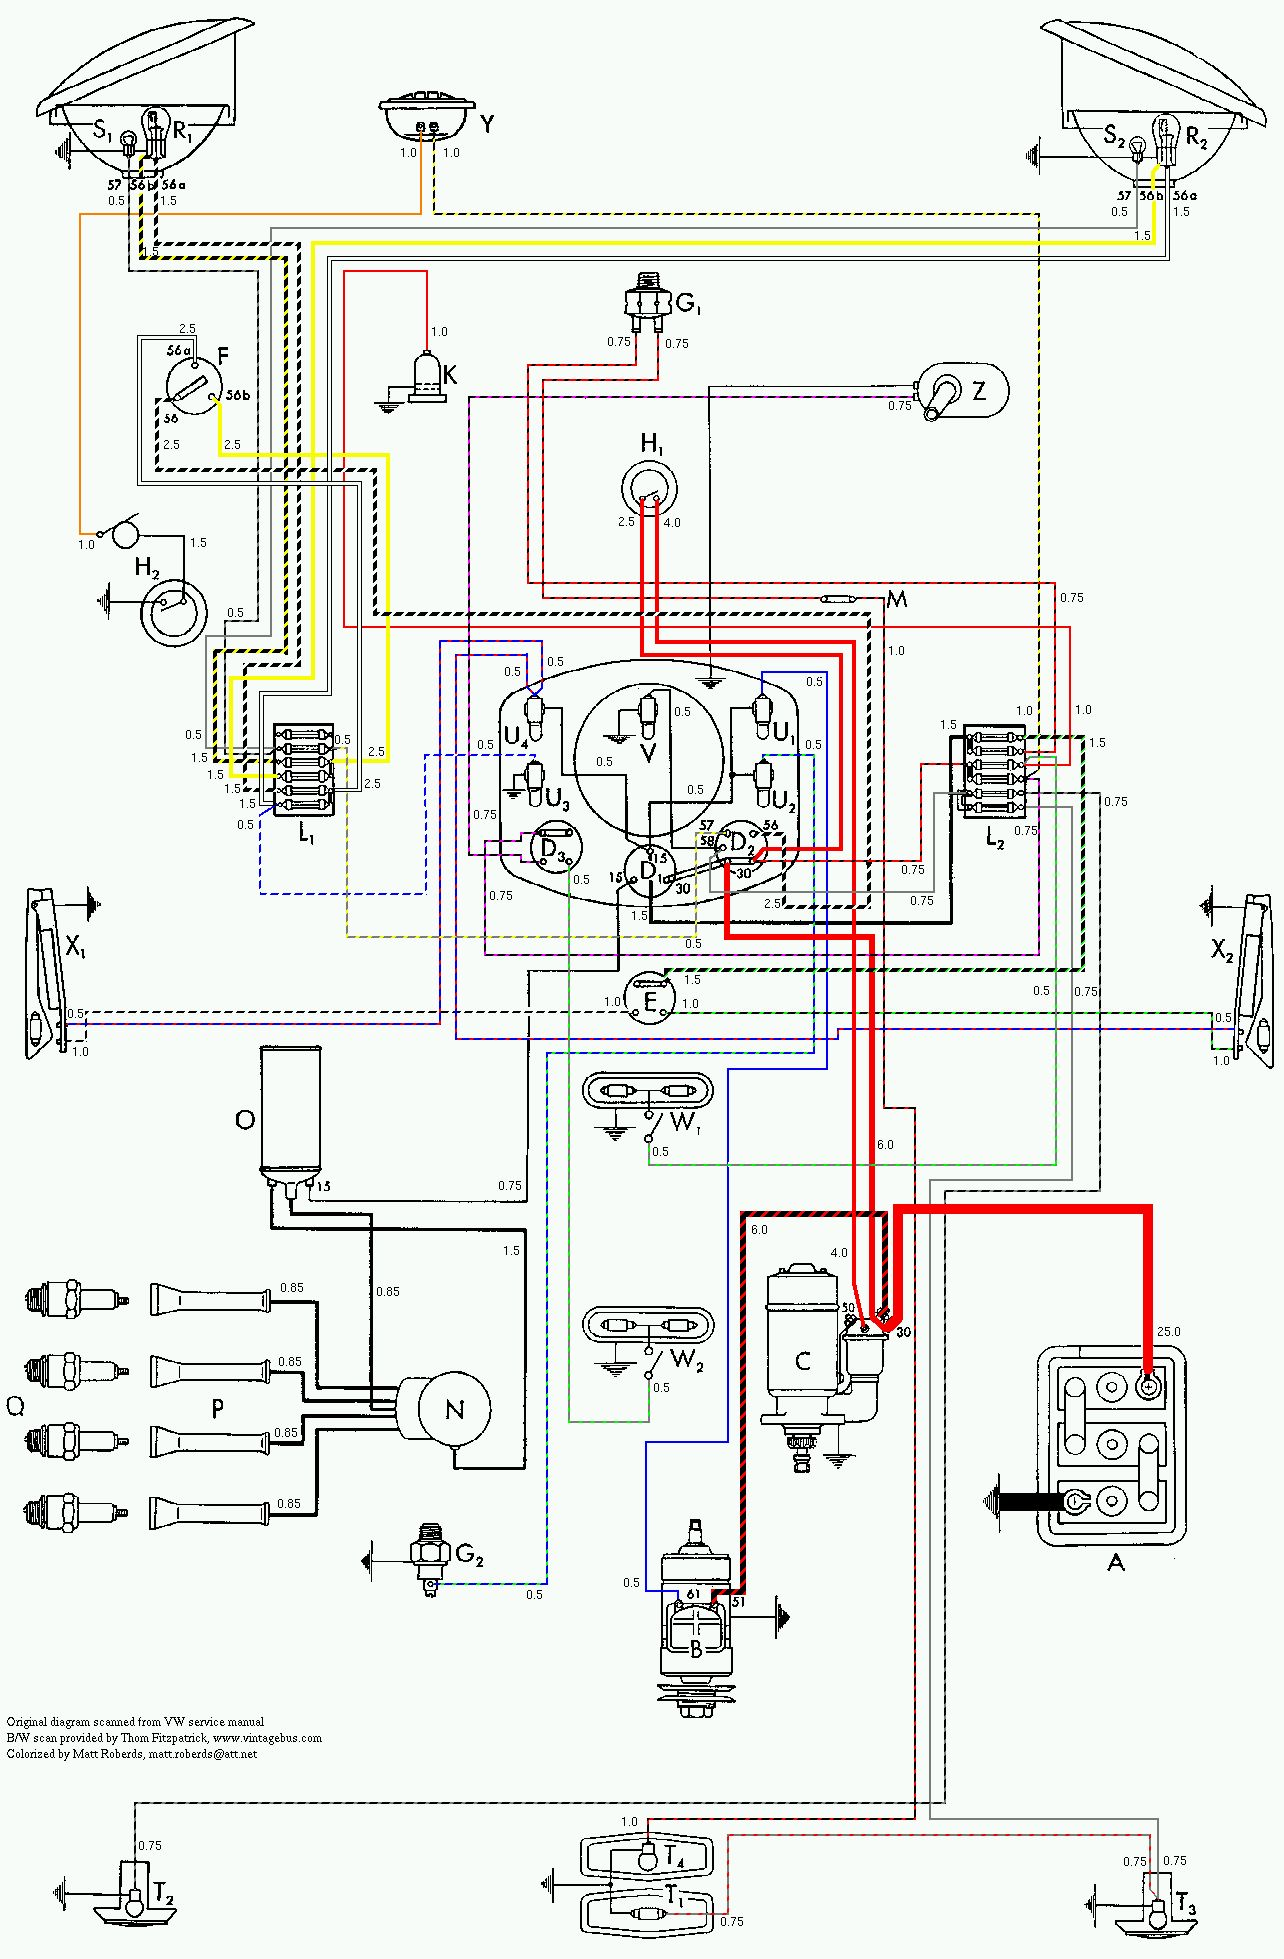 Vw Bus And Other Wiring Diagrams Panel From Chevy Tail Light Diagram Lights Fuse To 1975